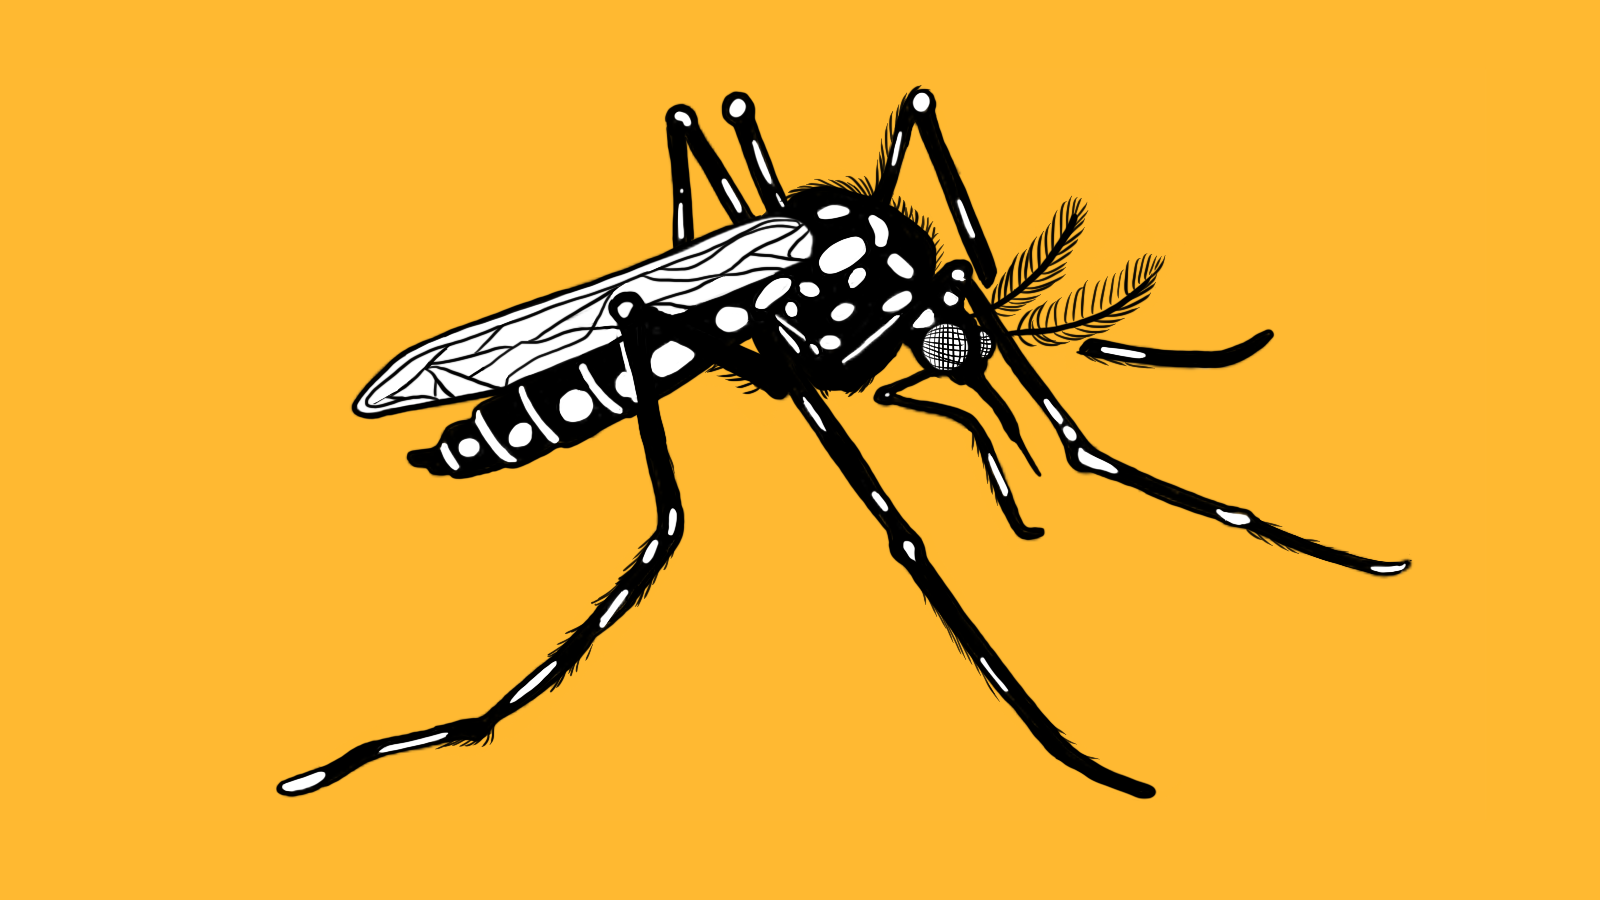 Artistic illustration of yellow fever mosquito